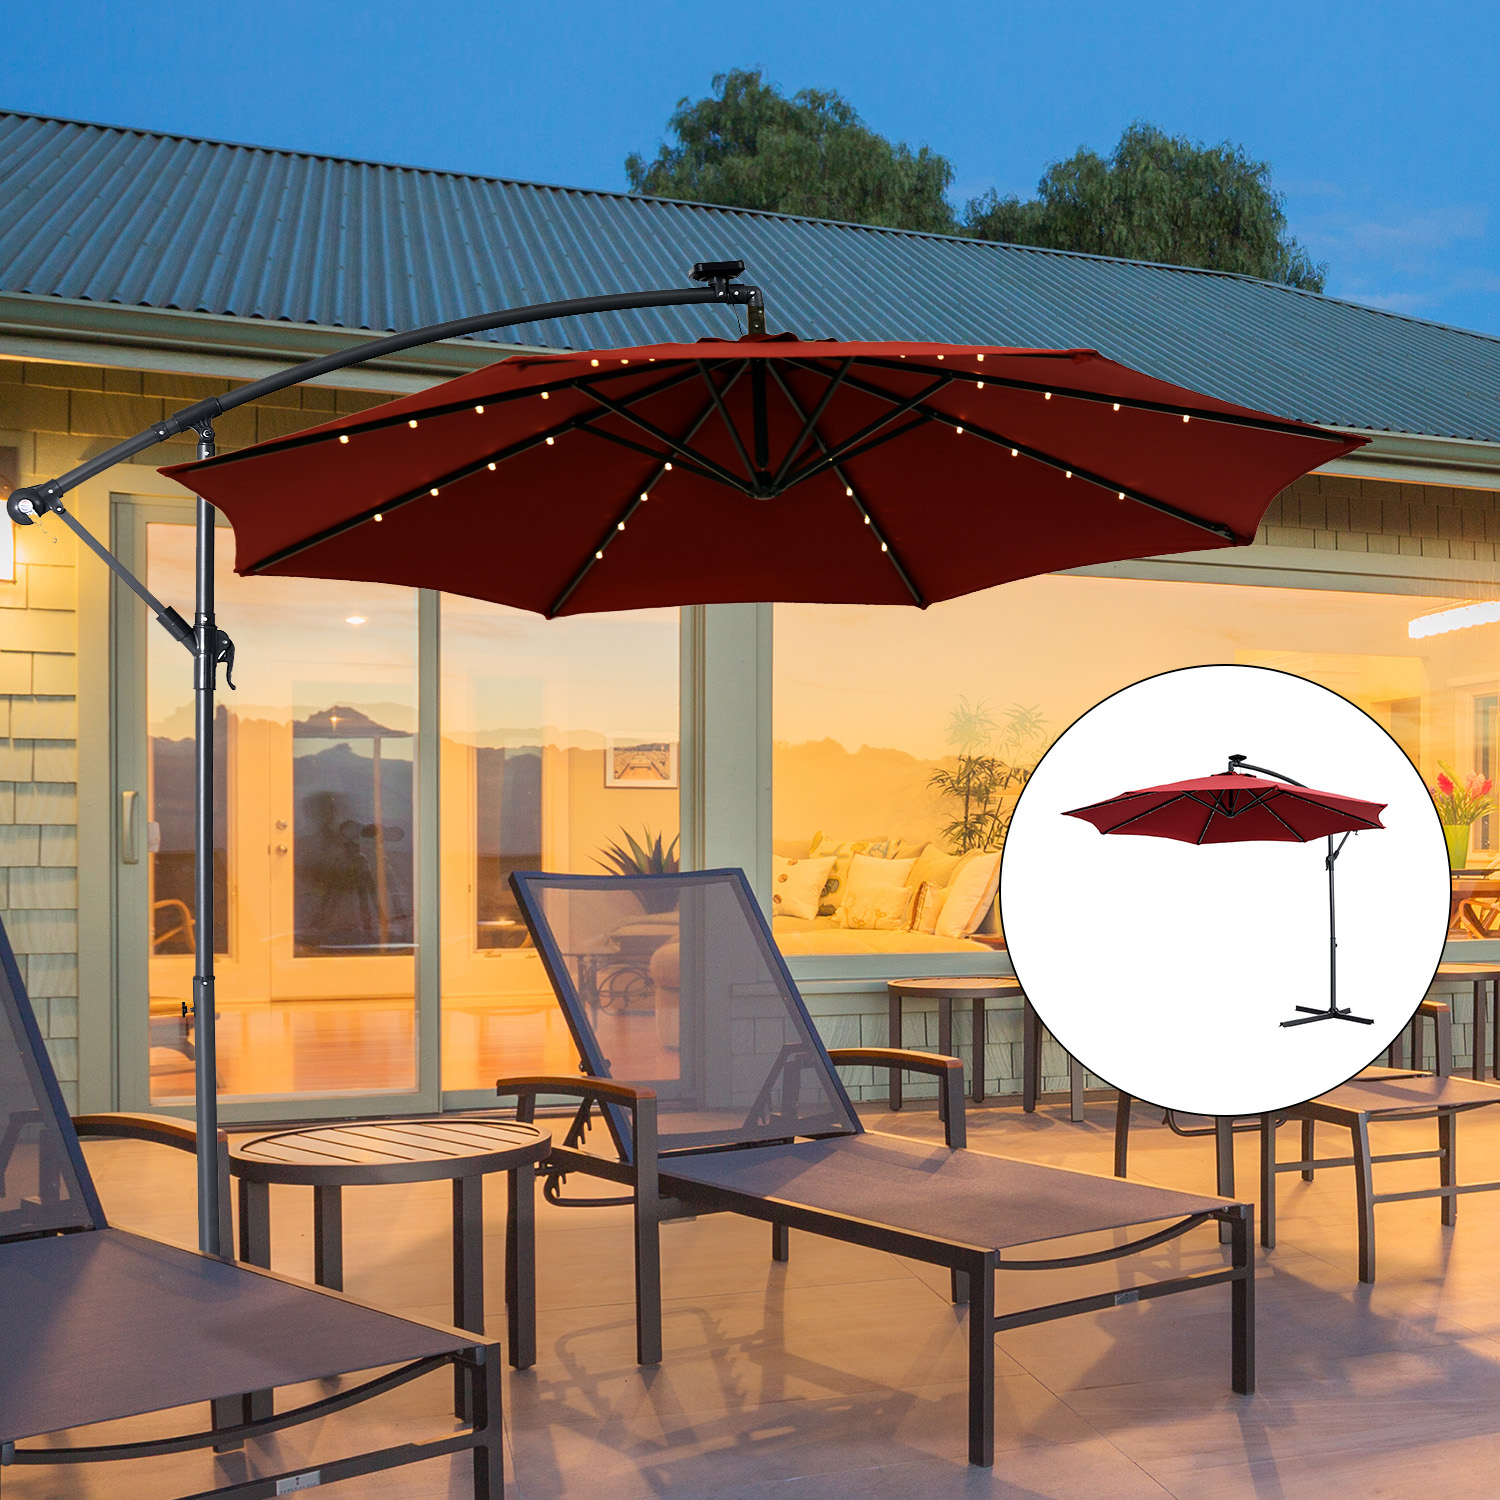 10FT Solar LED Lighted Patio Umbrella Outdoor Offset